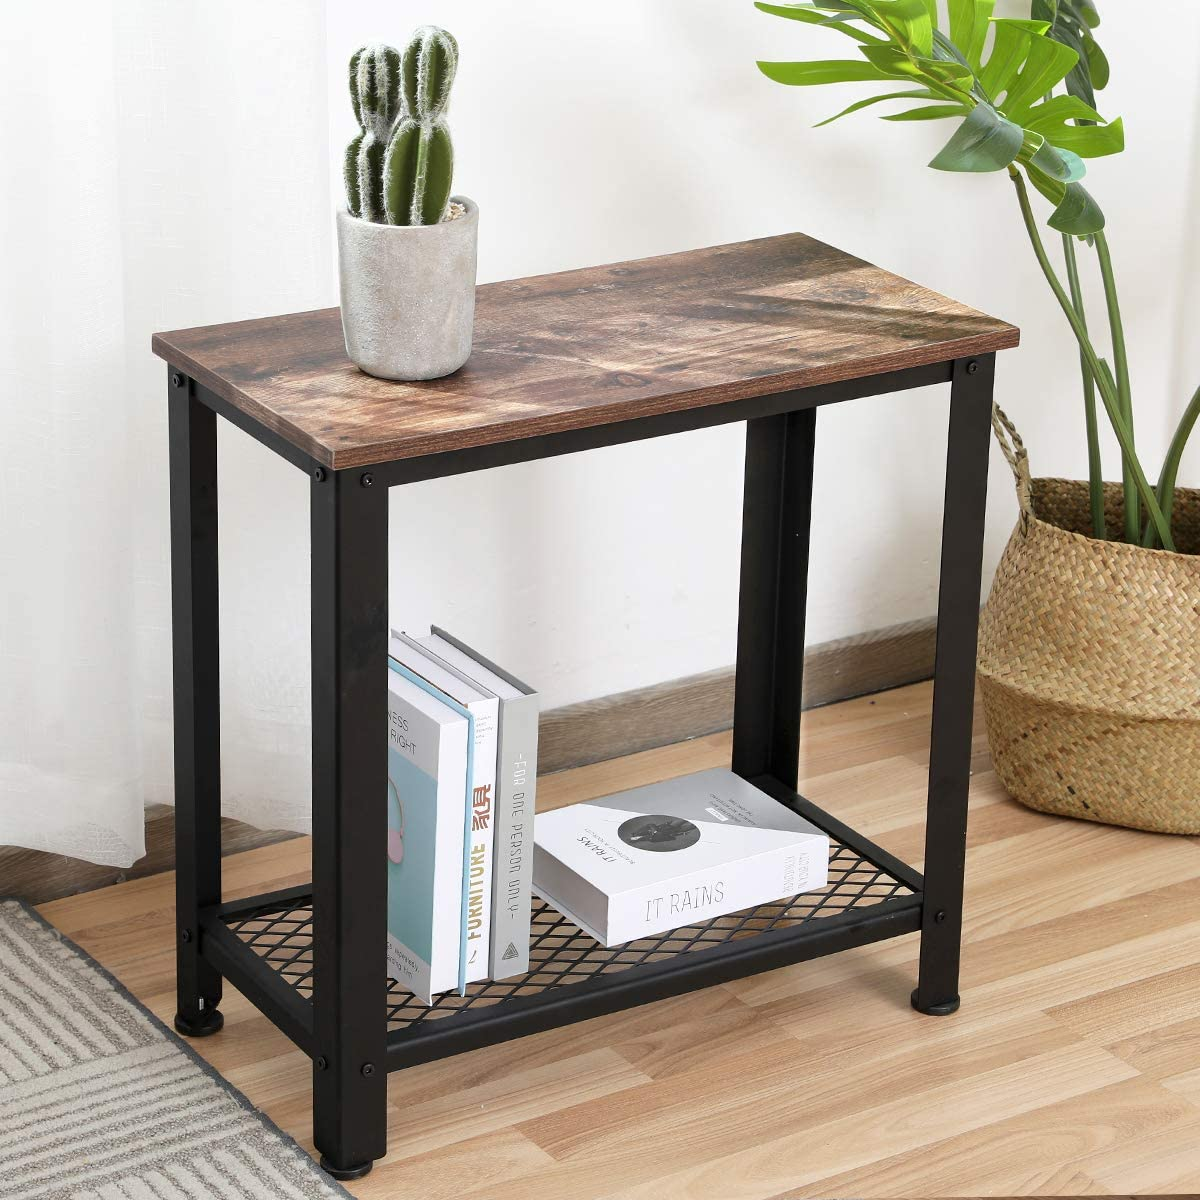 Save $39 On Console Table Sofa Table with Shelf Wooden